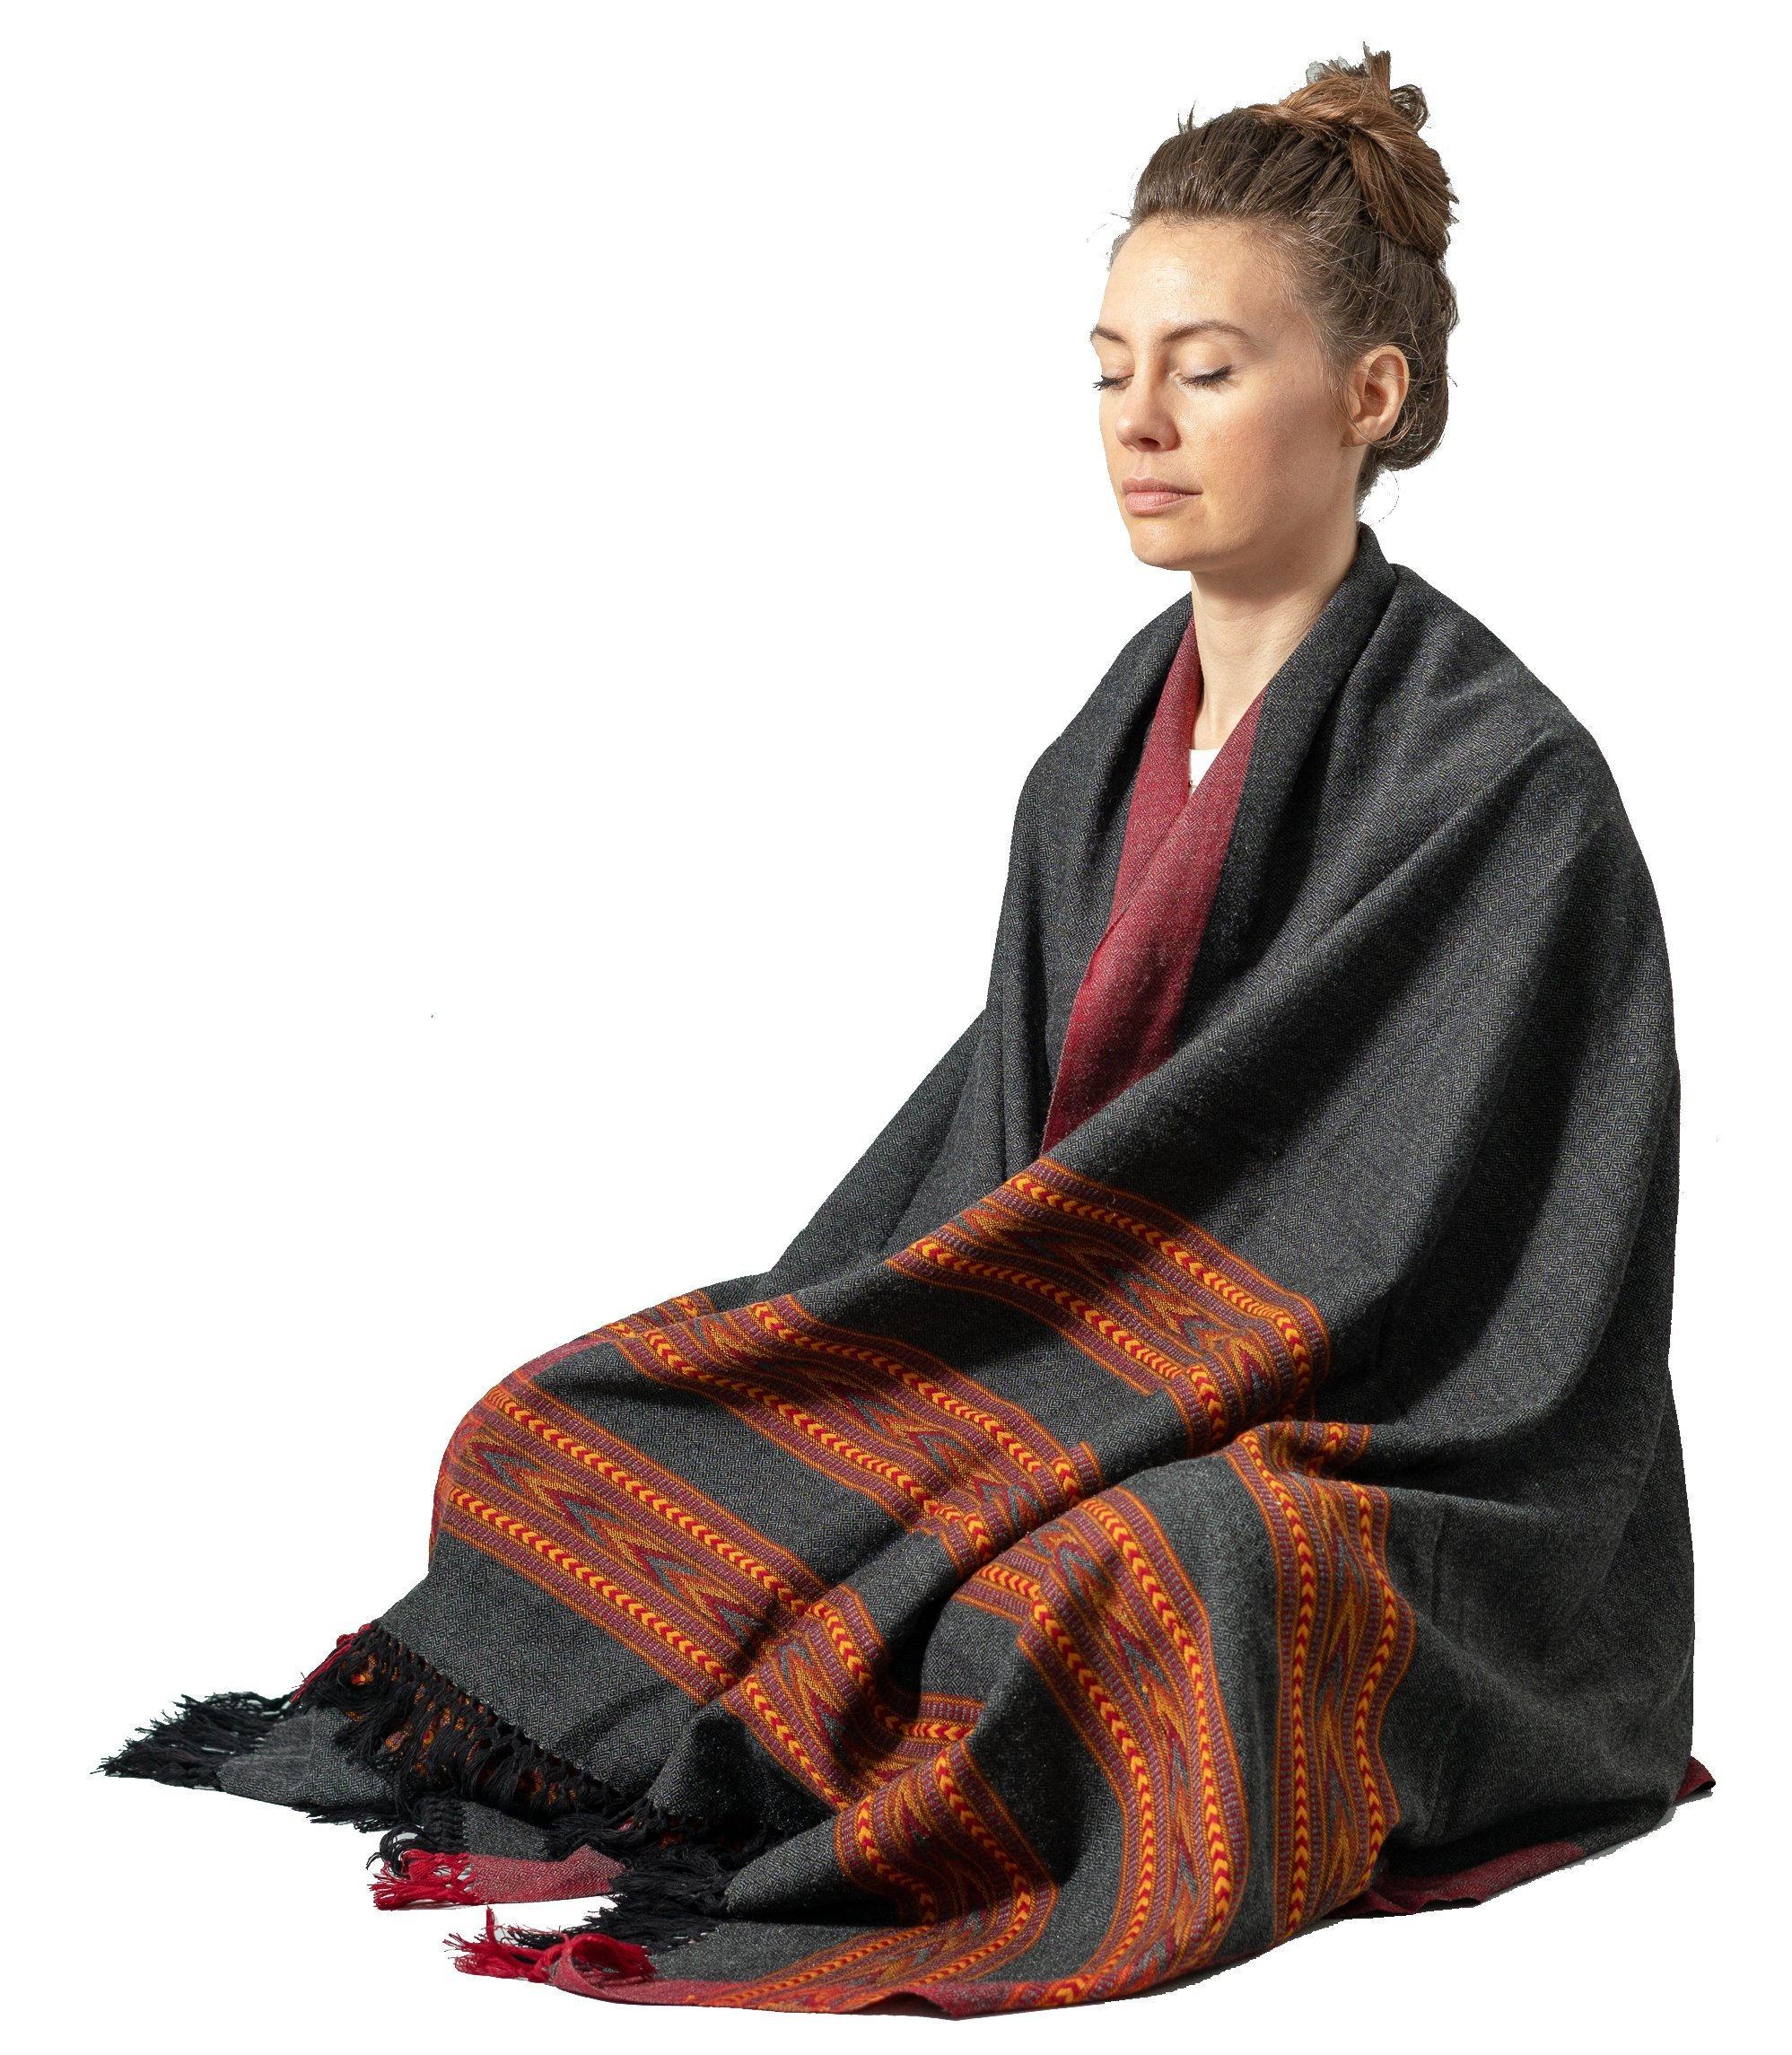 Meditation Shawl by Om Shanti Crafts | Prayer Shawl, Buddha Blanket, Oversize Scarf, or Wool Wrap for Daily Meditation Unisex (Extra Large 7.5'x3.5')